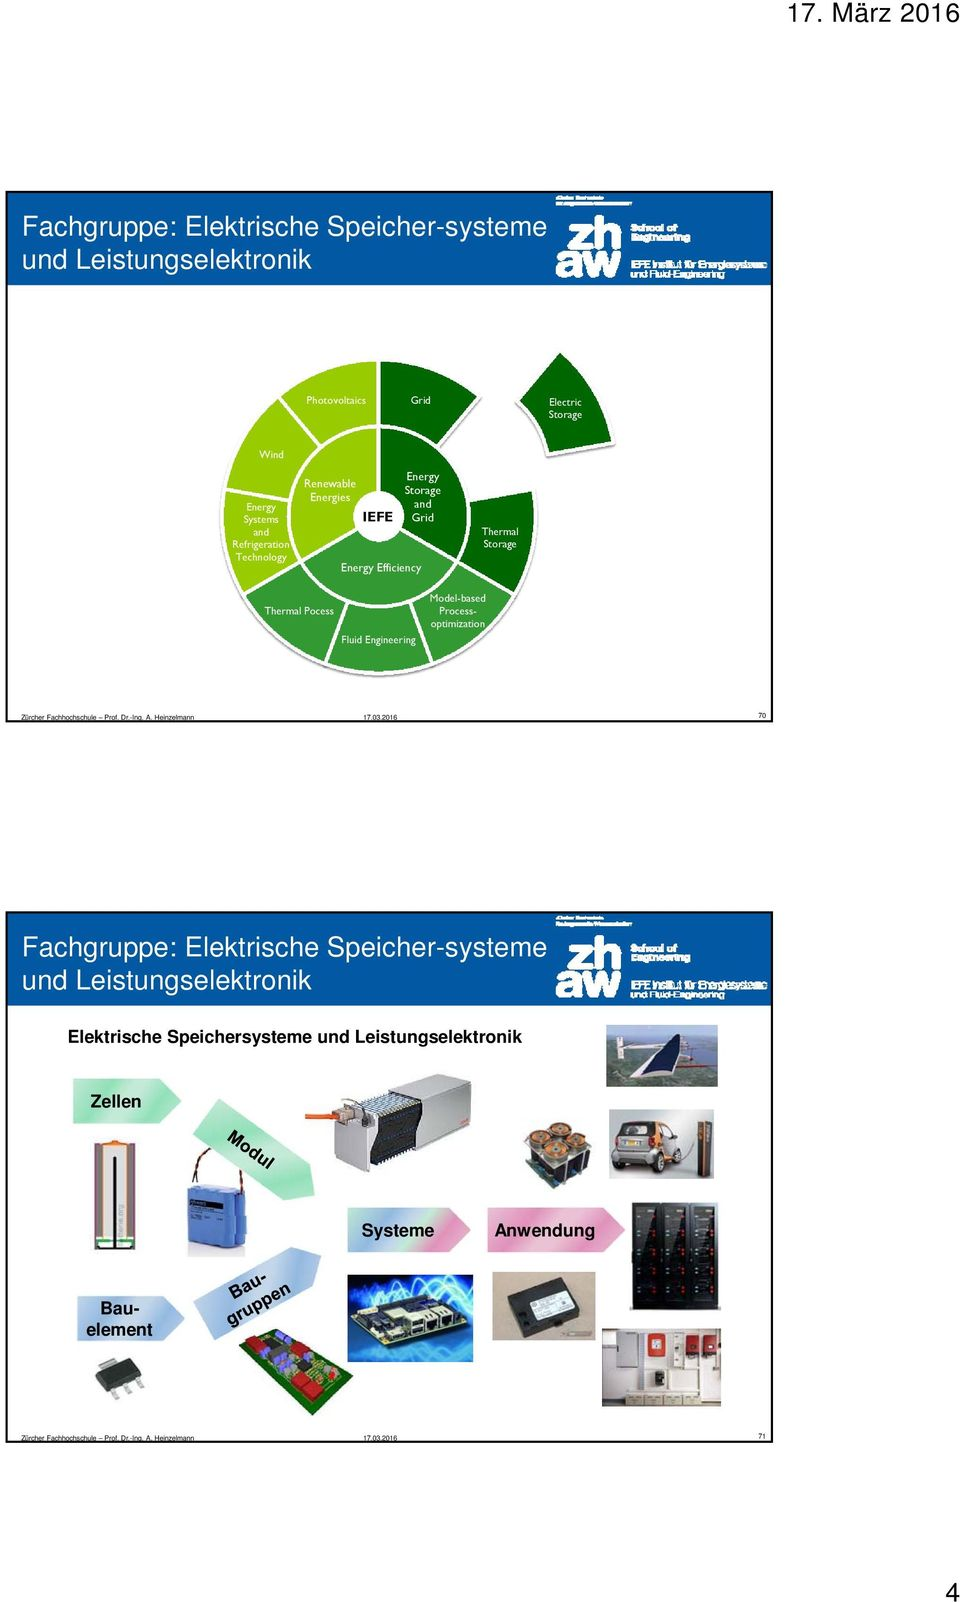 Storage Thermal Storage Thermal Pocess Fluid Engineering 70 Fachgruppe: Elektrische Speicher-systeme und